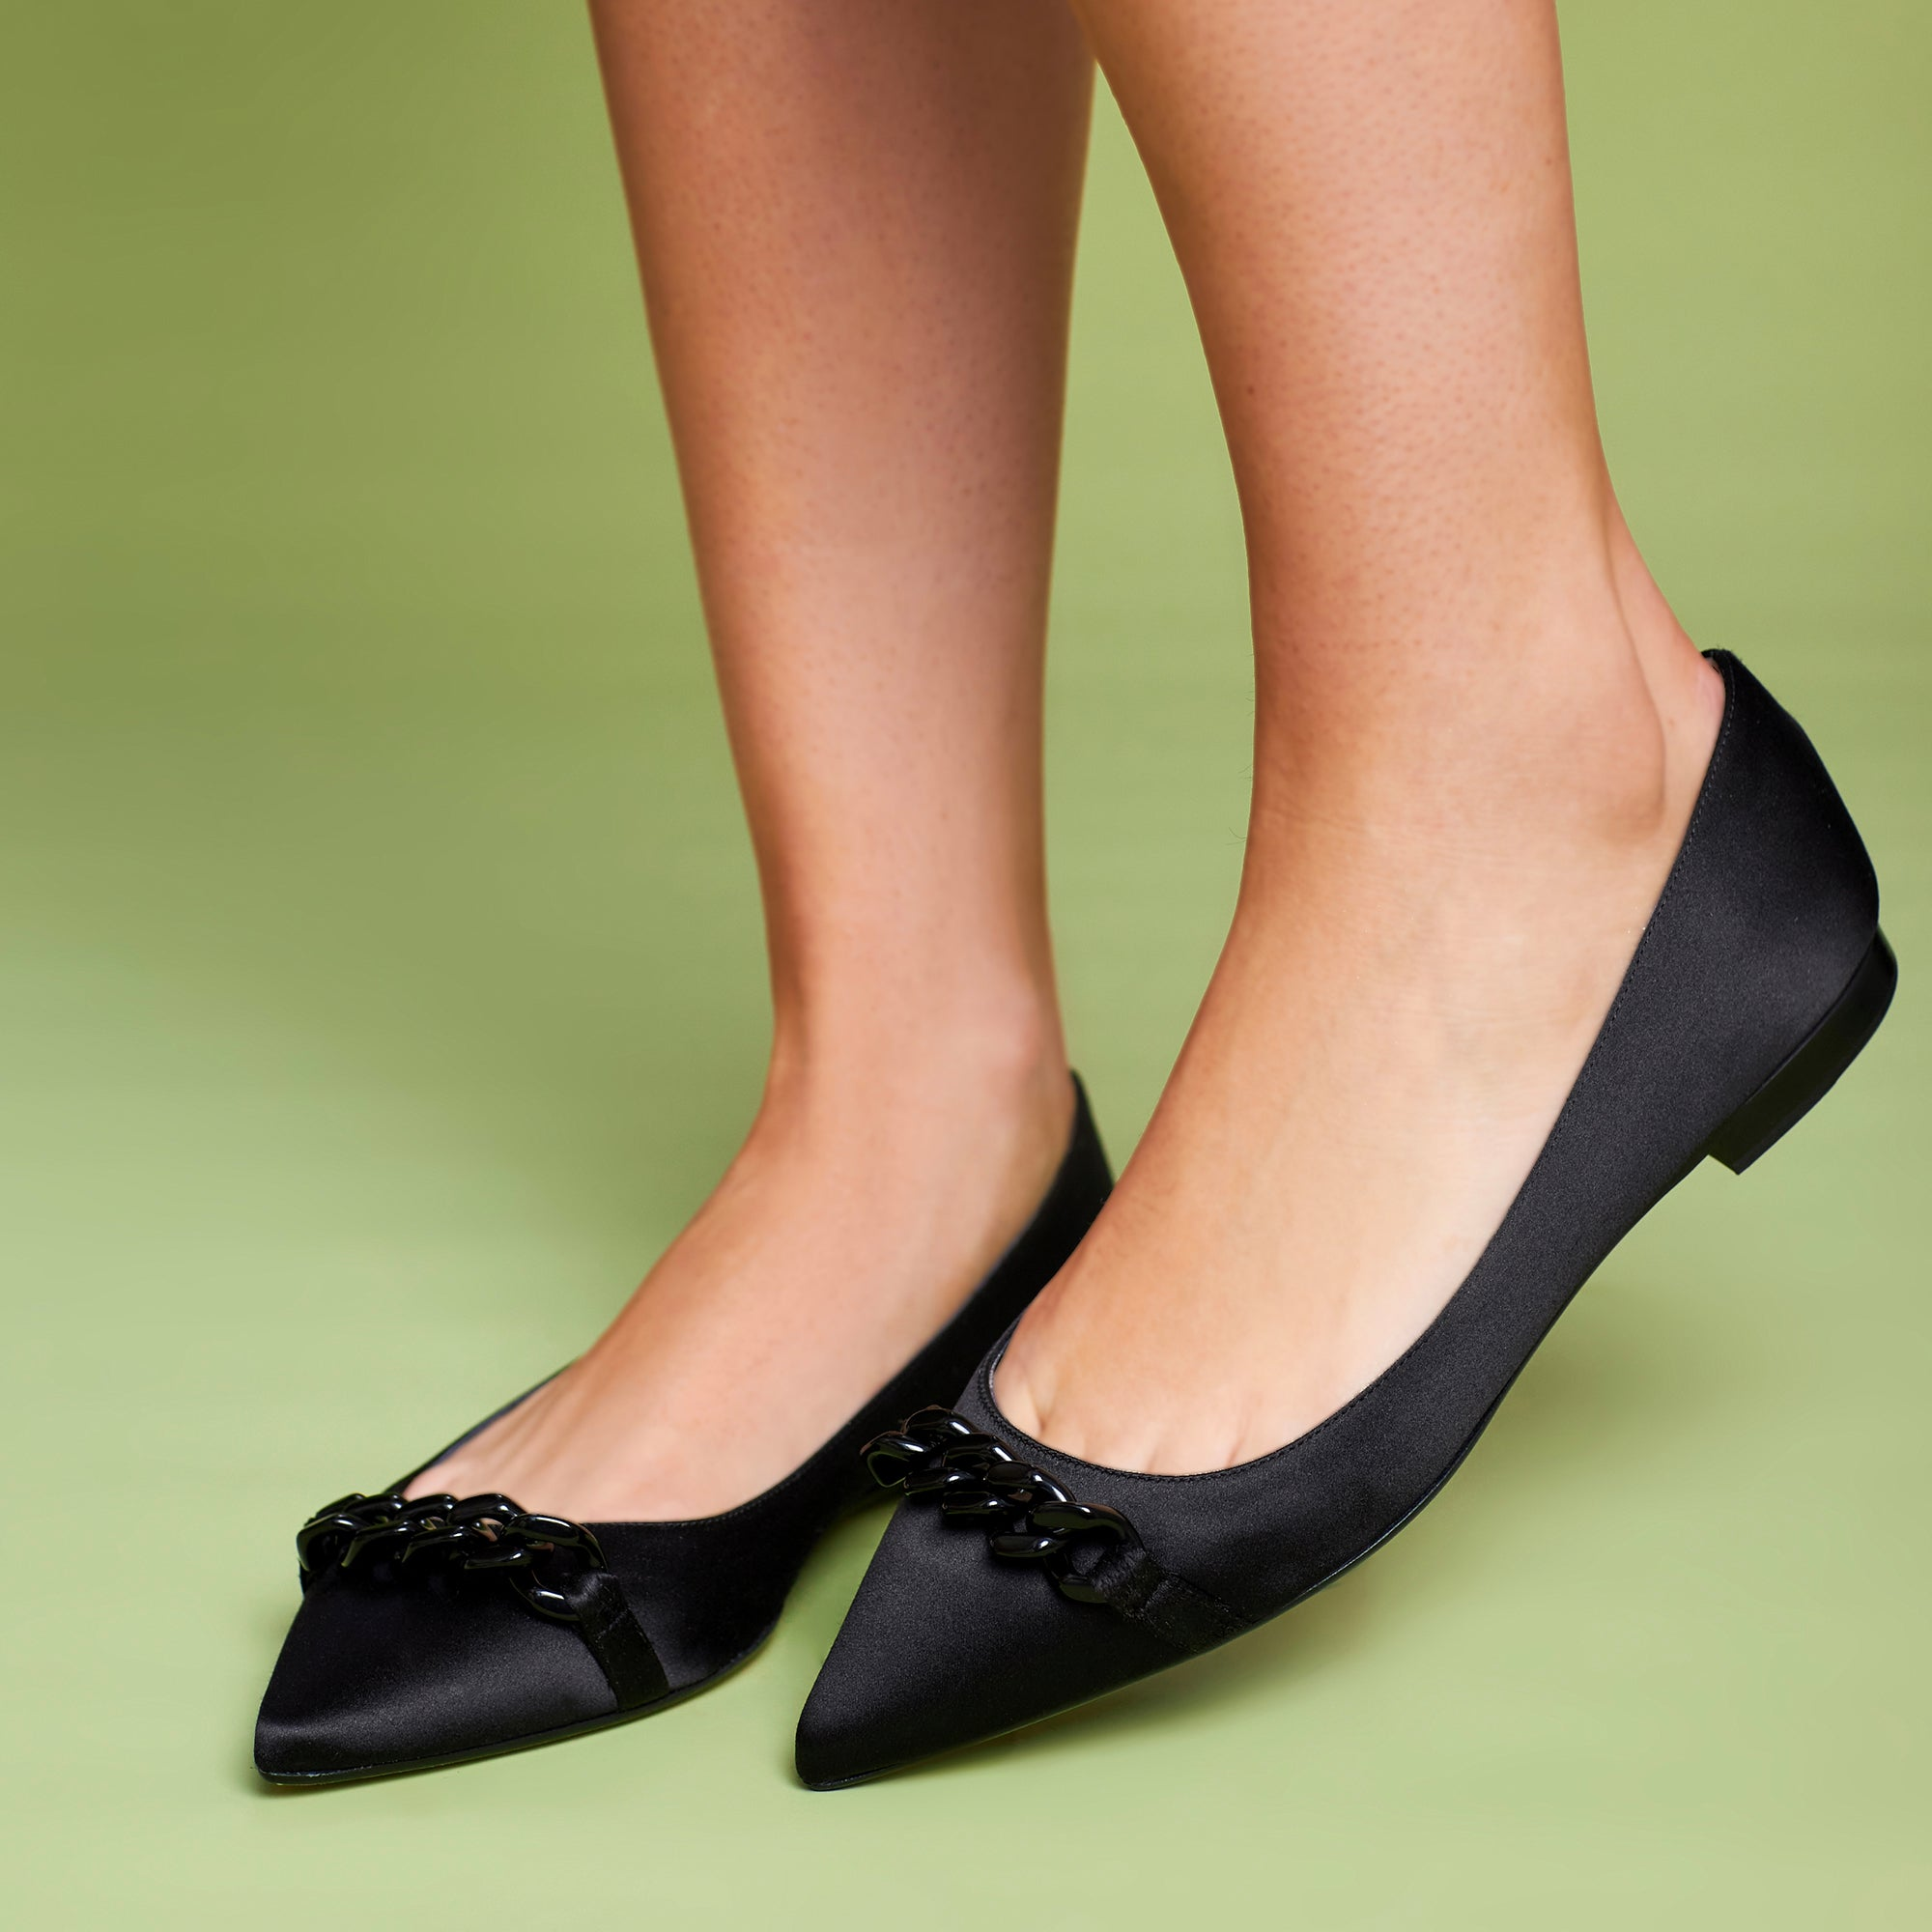 Poppy Black Satin Pointed Toe Flat